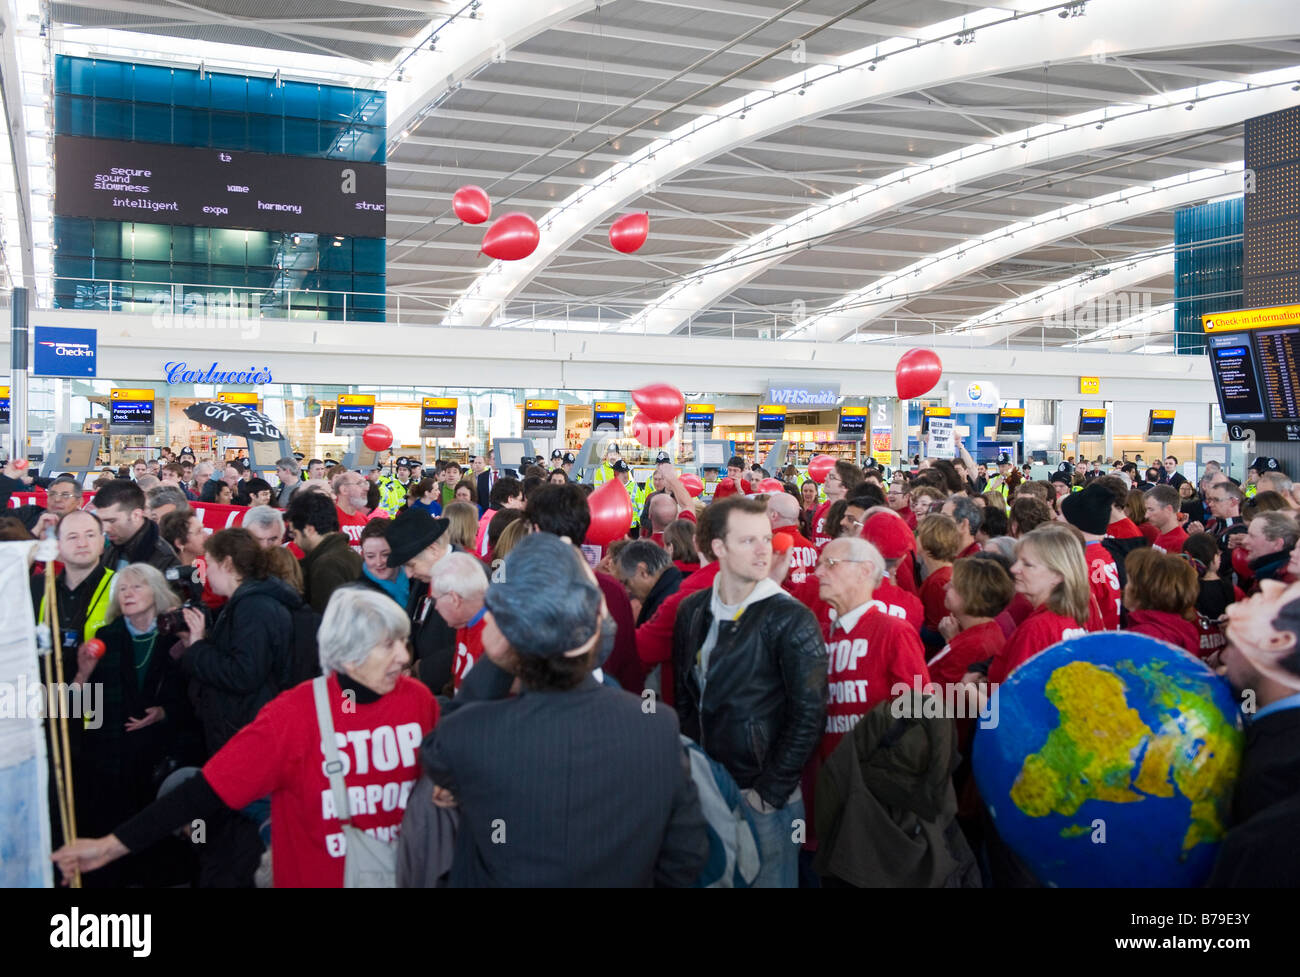 Activists opposed to a third runway at Heathrow staging a 'flash mob' protest inside the airport's Terminal - Stock Image